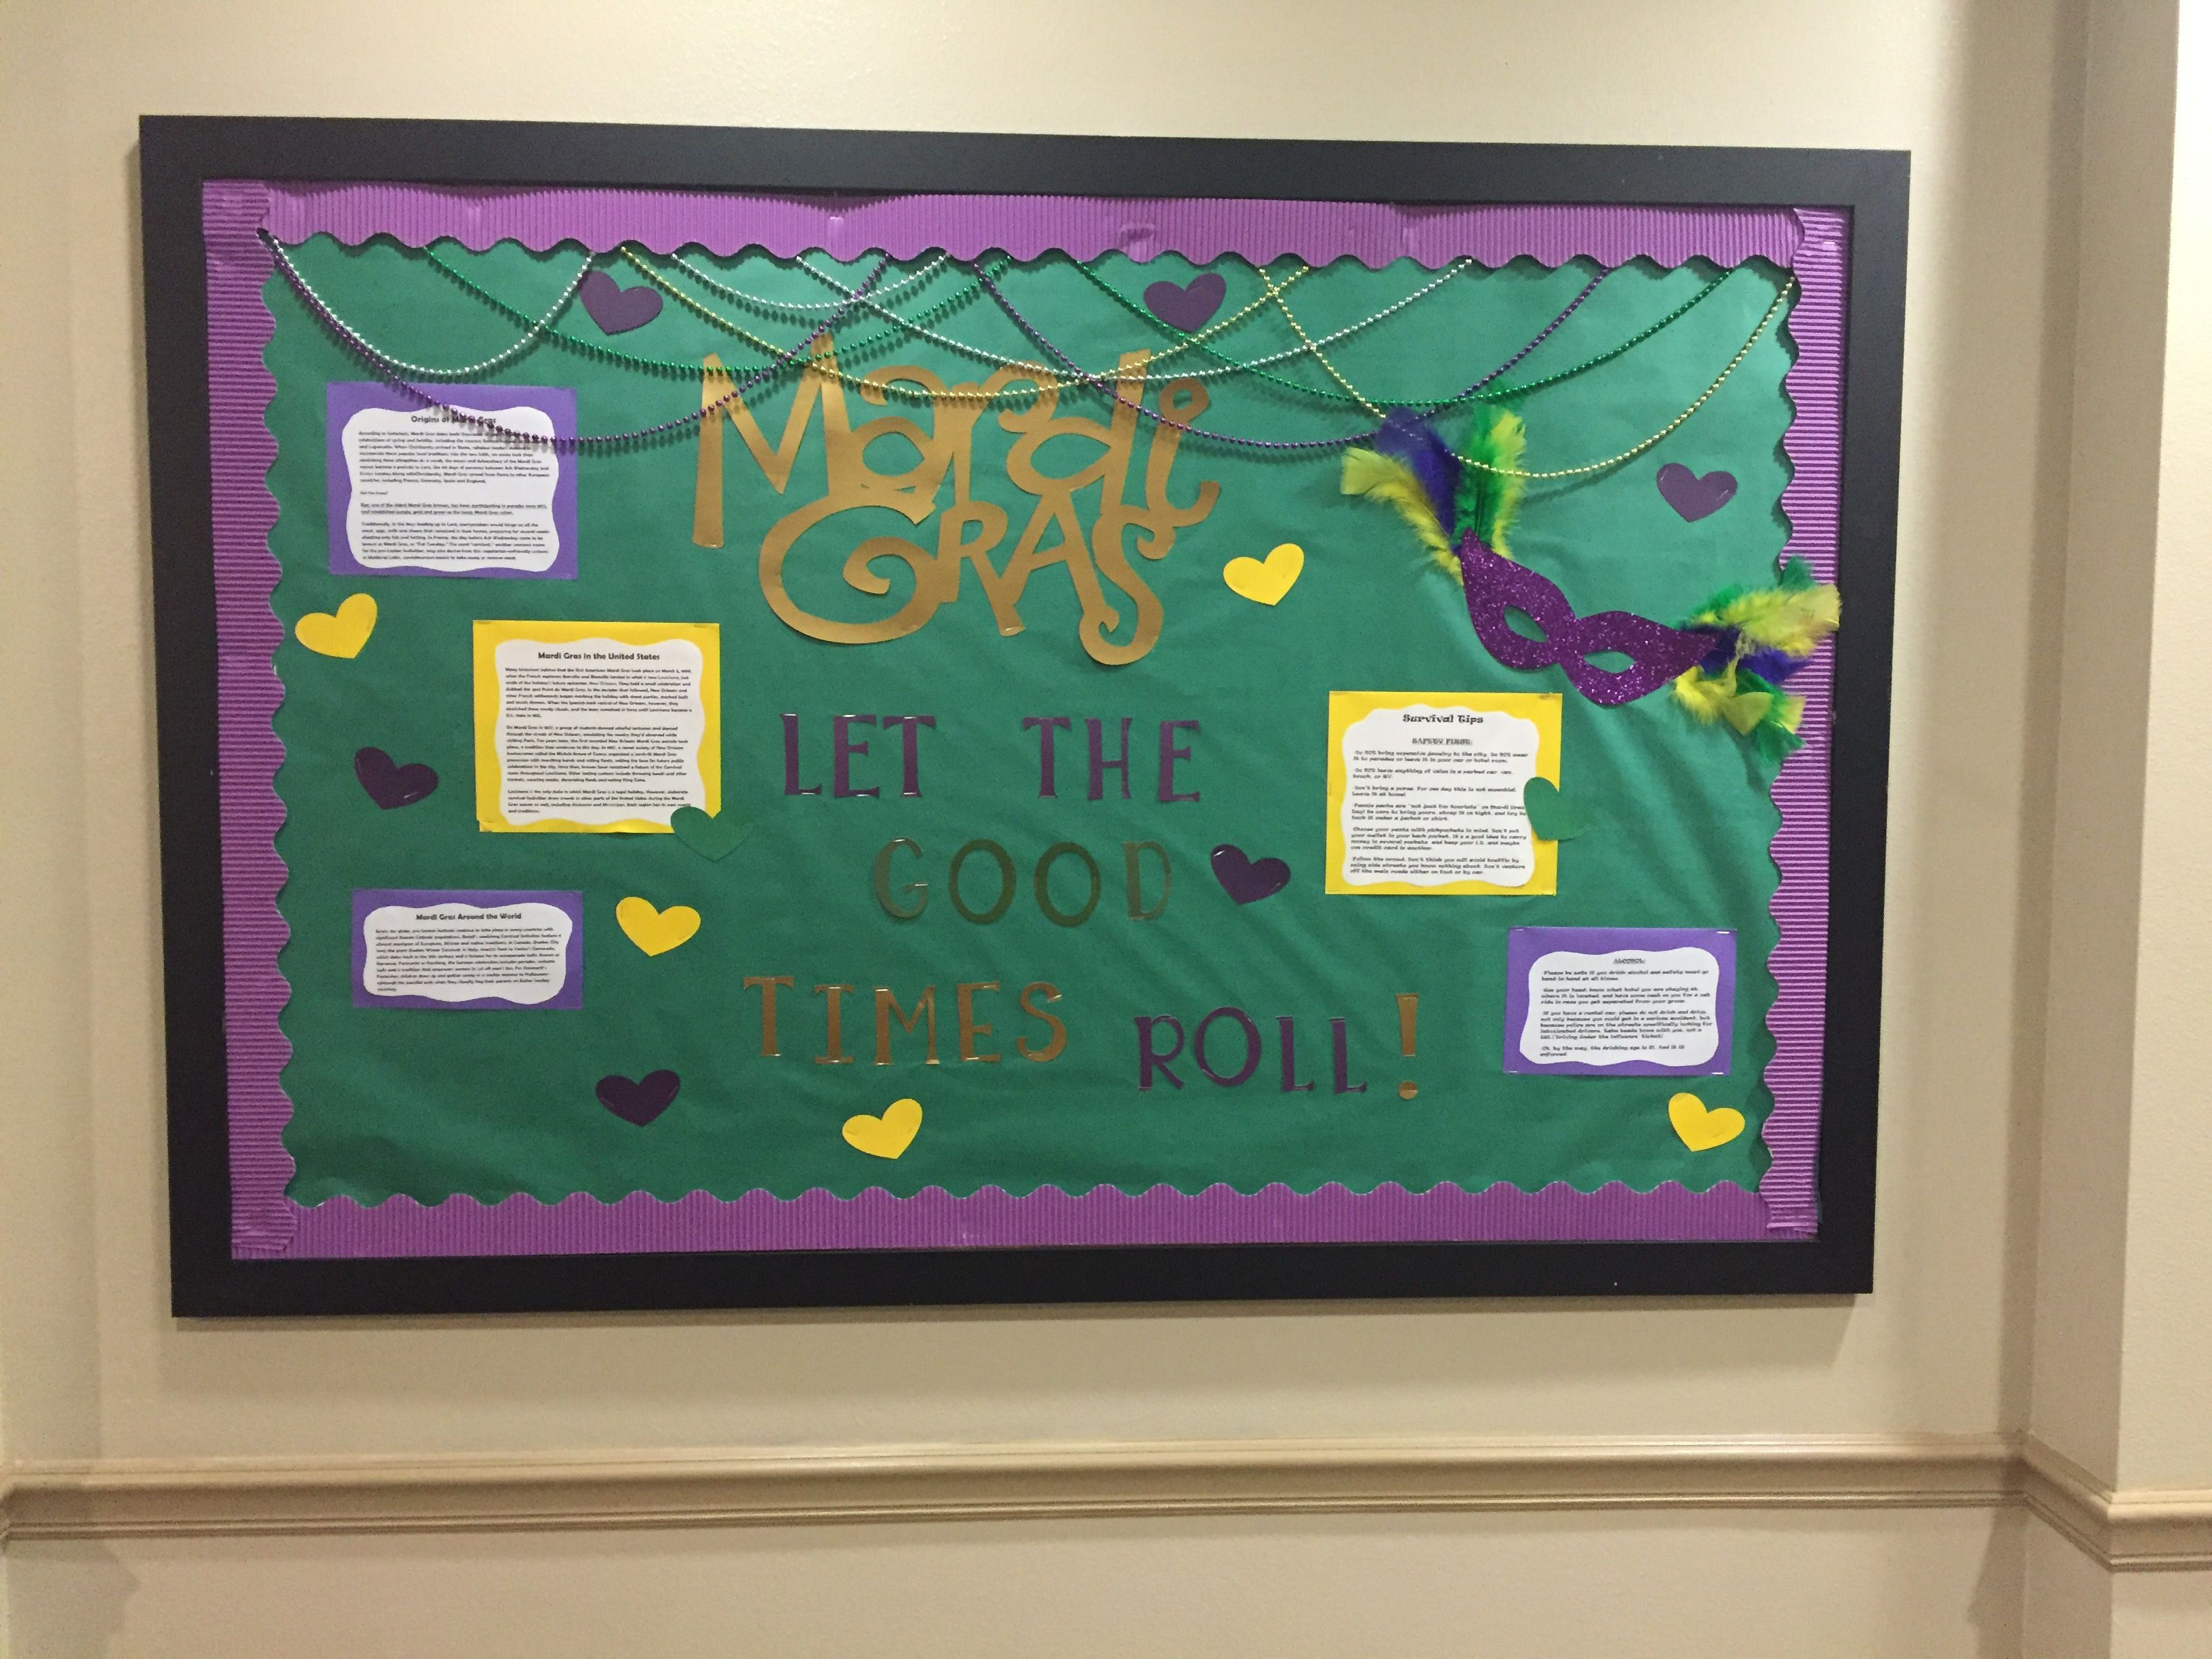 Ra College Bulletin Board Mardi Gras Let The Good Times